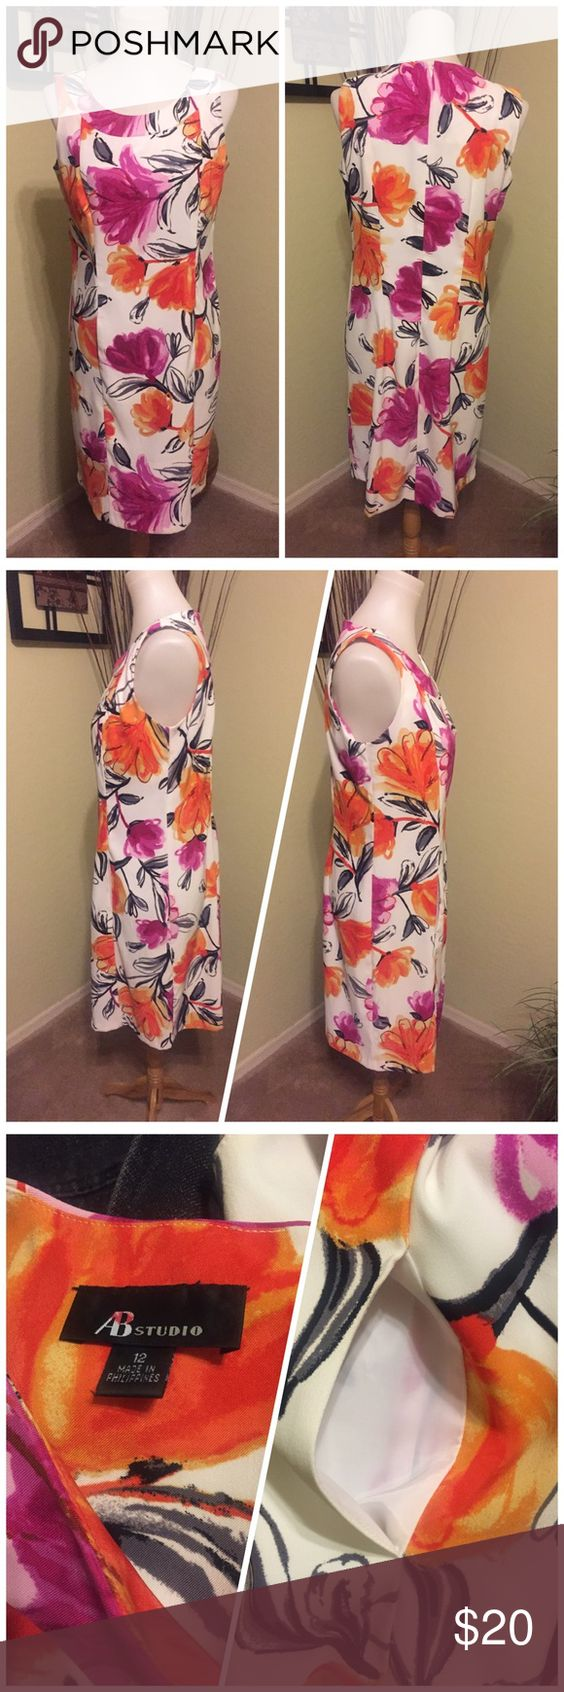 AB Studio Floral Dress 12 Beautiful dress with pockets and large purple and orange flowers on white background.  Perfect for summer!! AB Studio Dresses